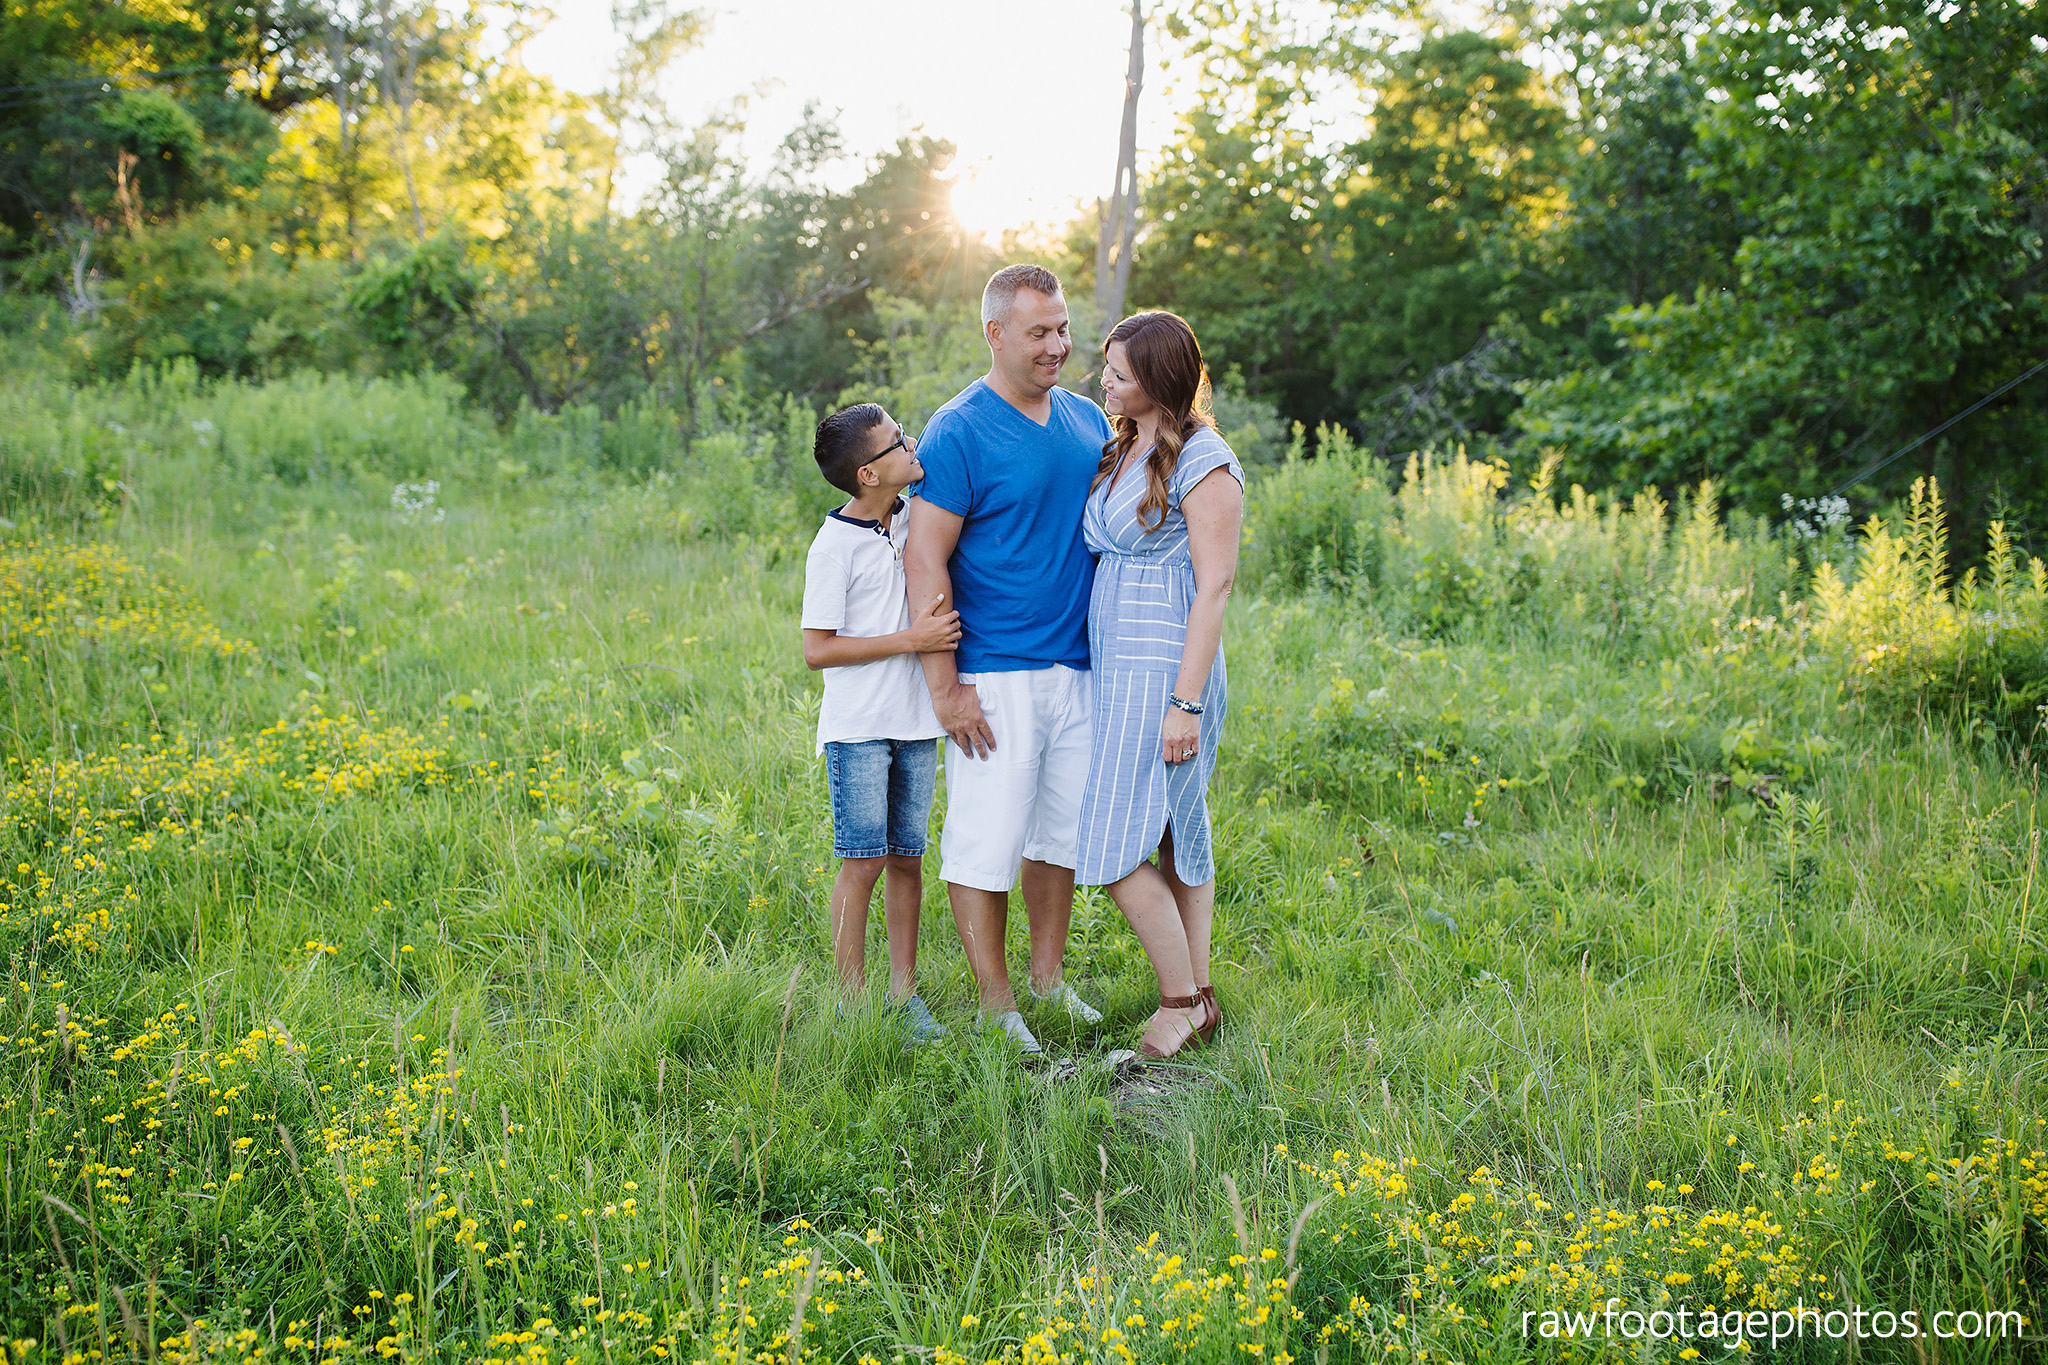 london_ontario_family_photography-lifestyle_photography-maternity_photos-raw_footage_photography-best_of_2018119.jpg